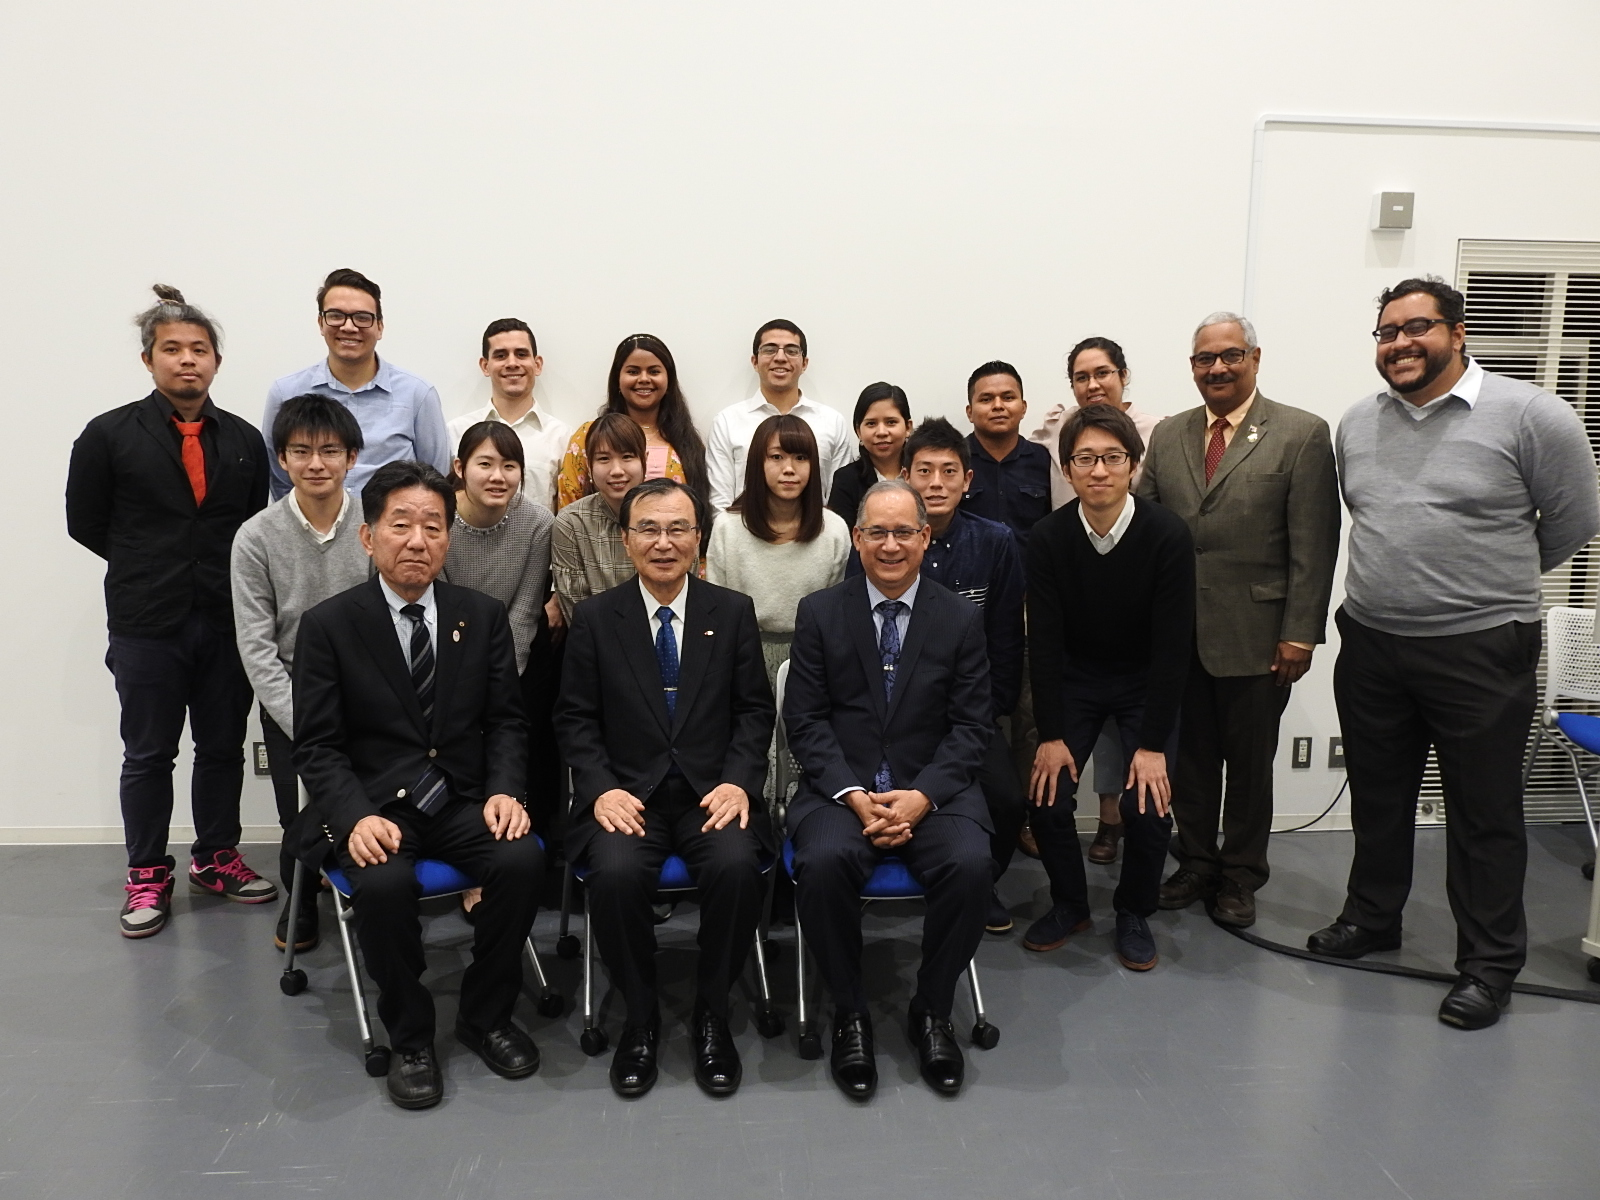 Ambassador Diaz, President Tokuhisa, Chairman Suzuki, together with professors and students of UP, UTP and Chiba University